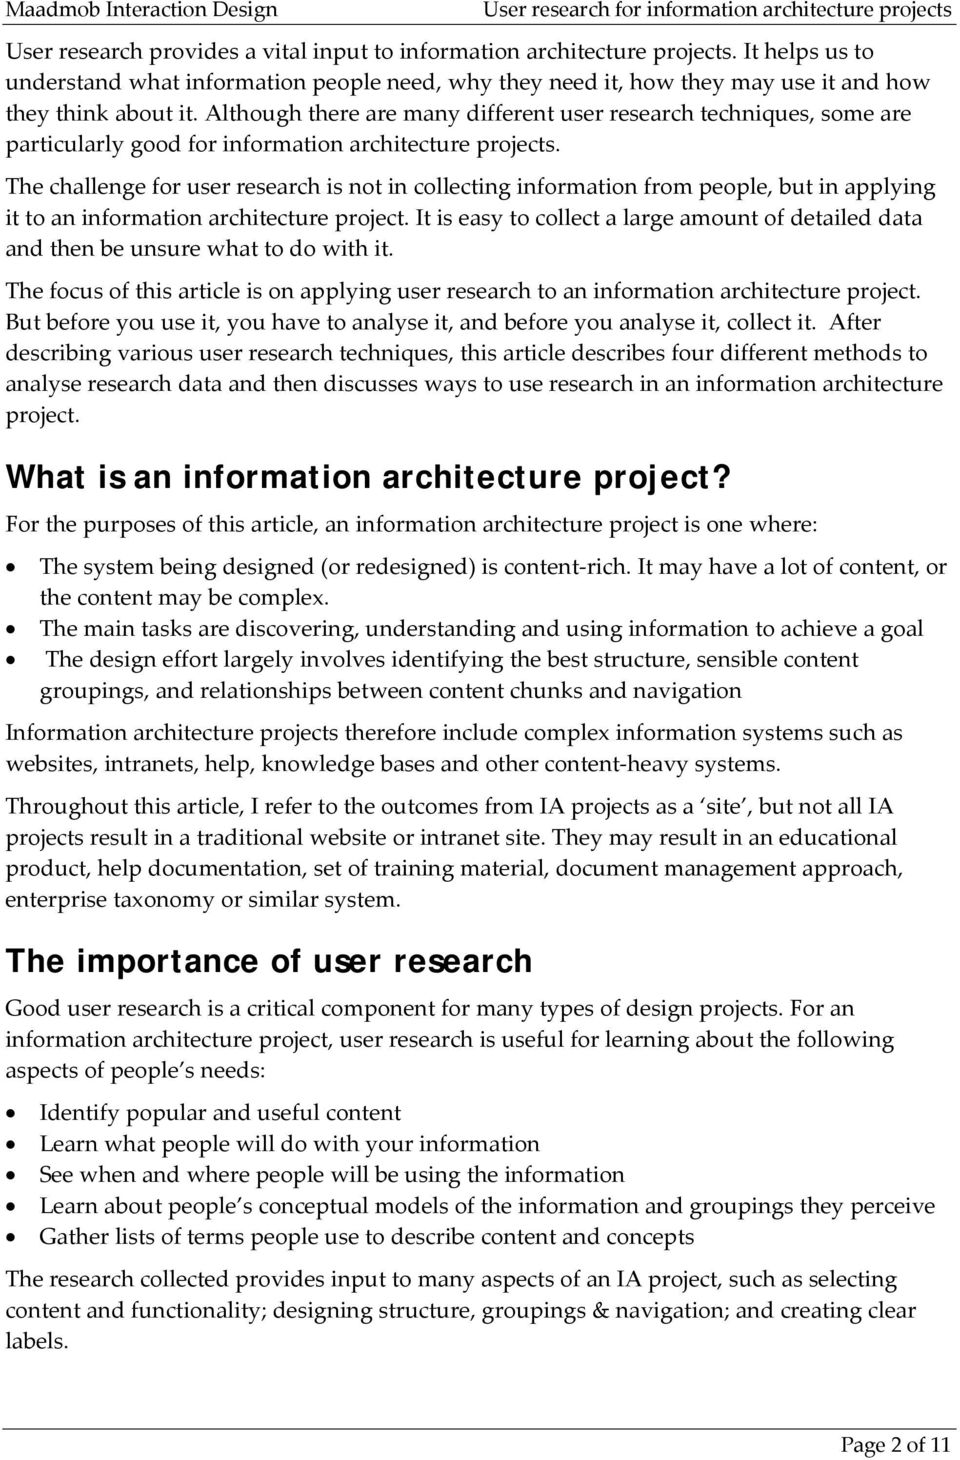 The challenge for user research is not in collecting information from people, but in applying it to an information architecture project.